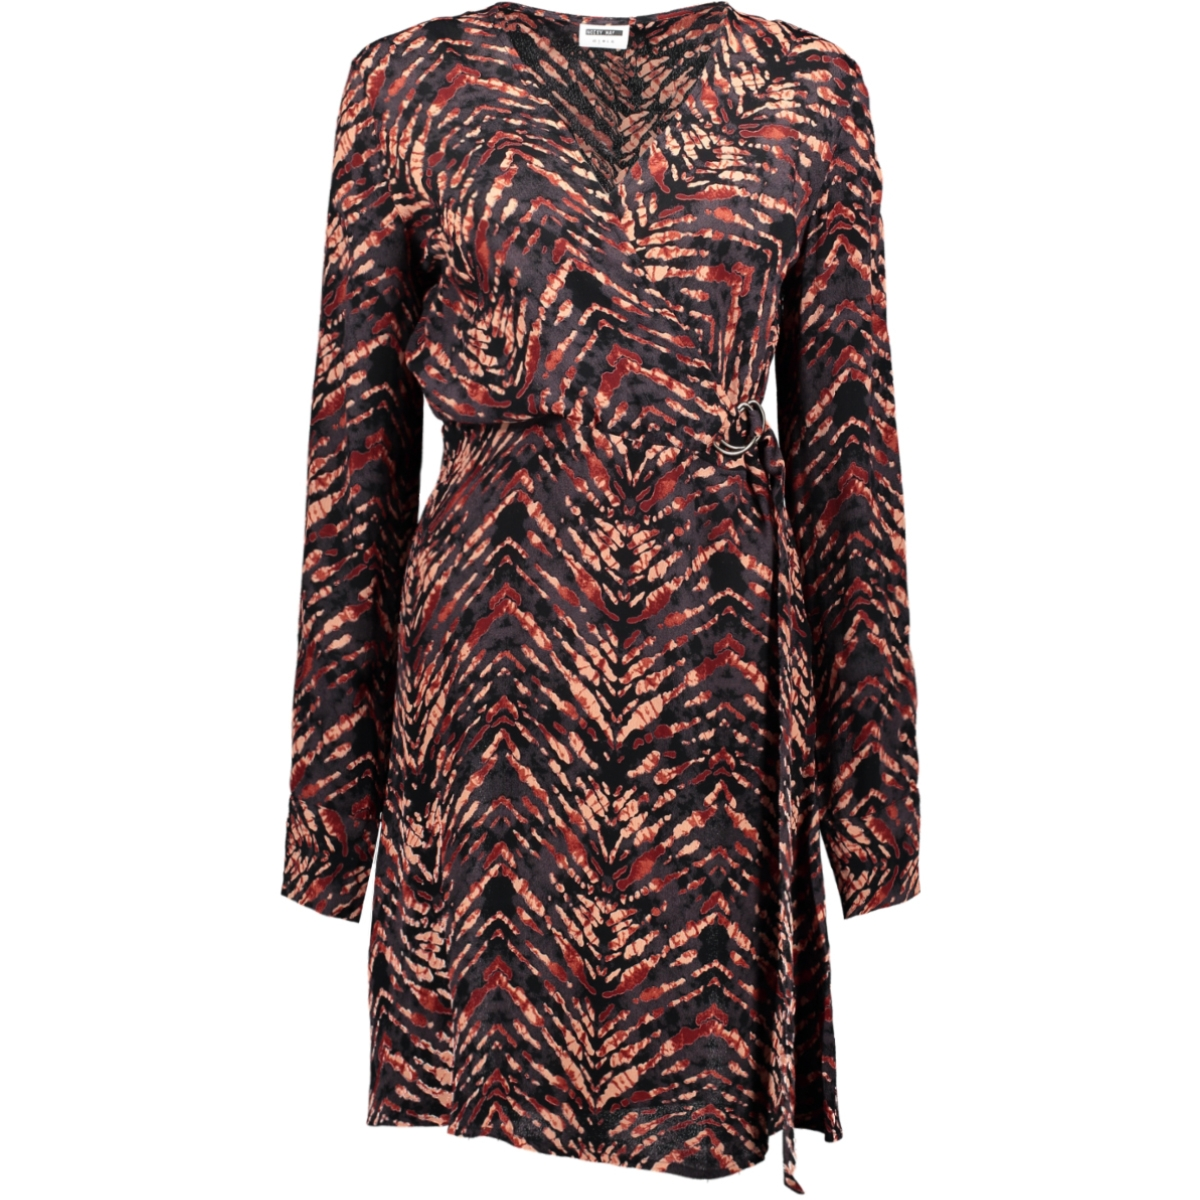 nmurban l/s buckle dress 27010033 noisy may jurk tandori spice/animal print